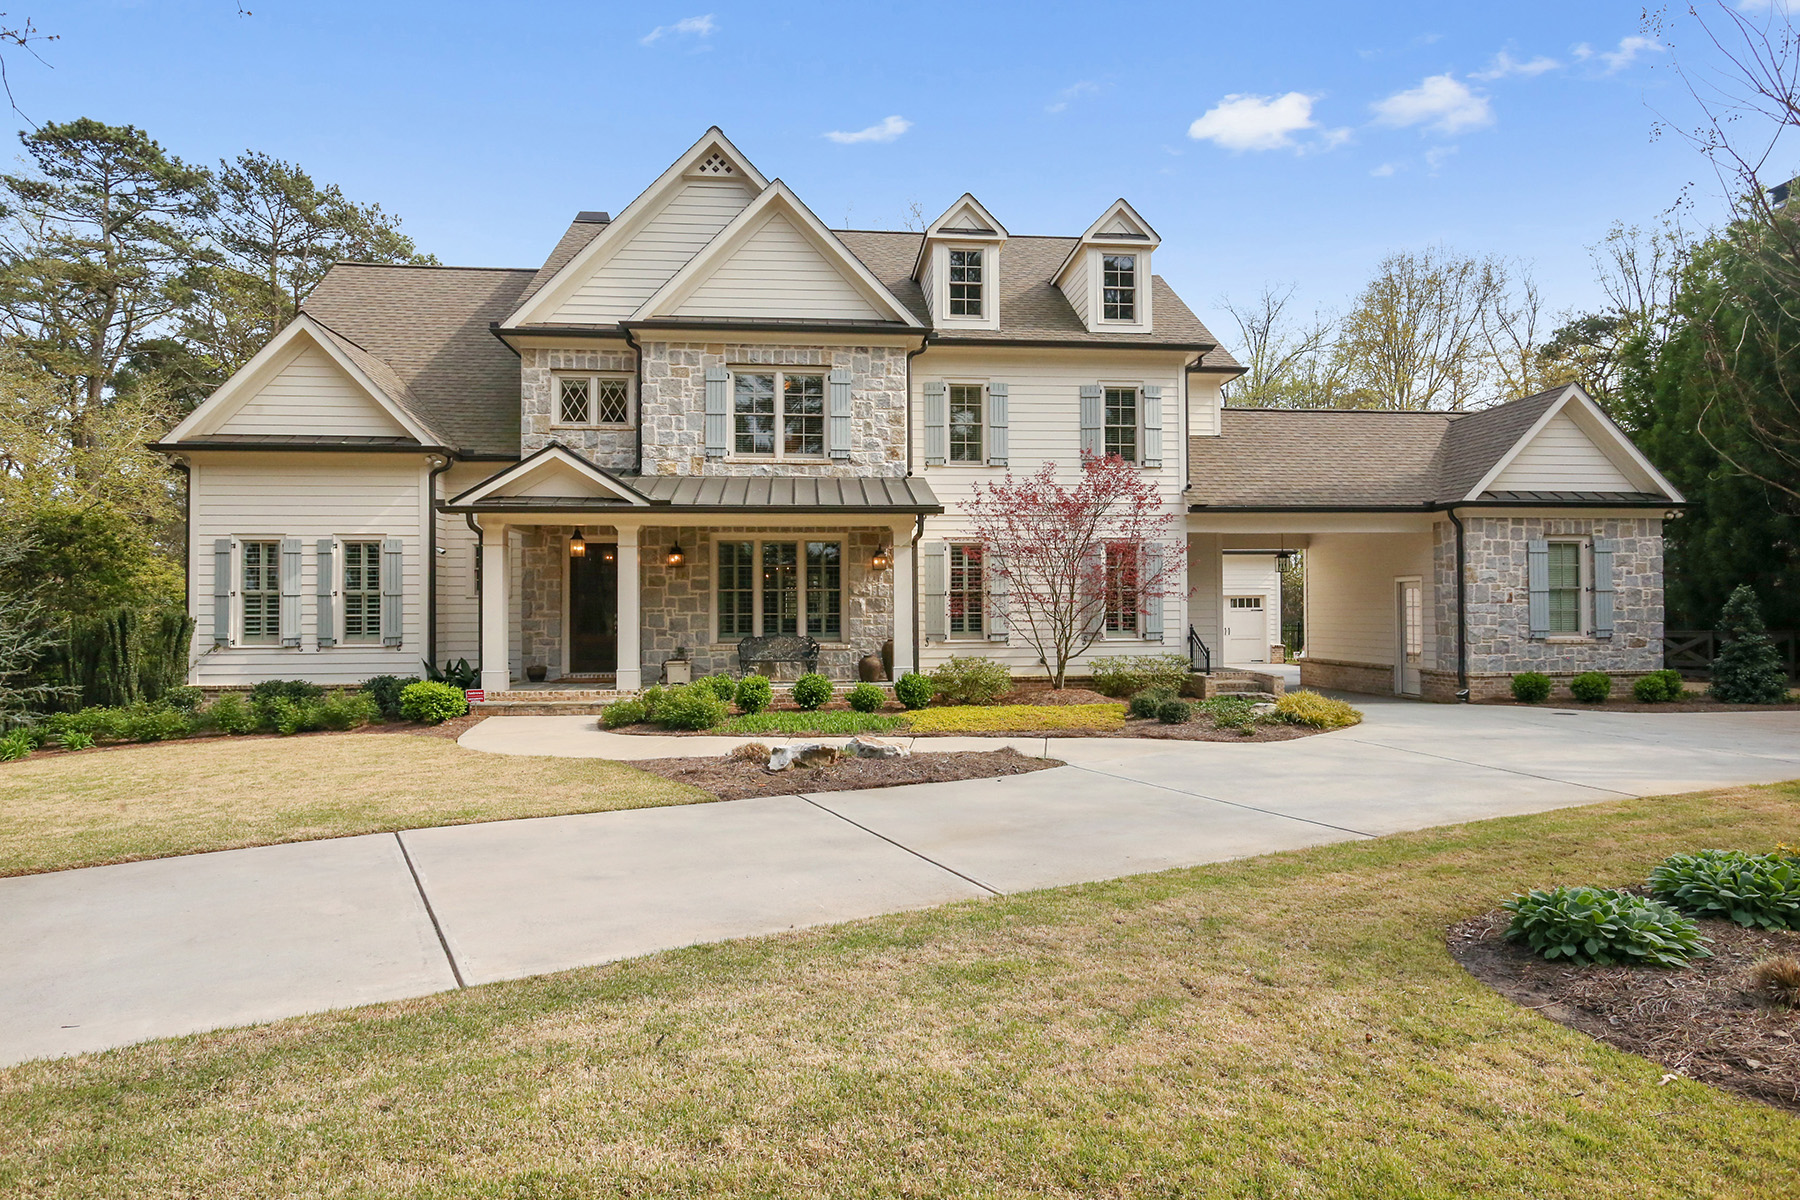 Single Family Home for Sale at Light-Filled, Casually Elegant Buckhead Home 744 Moores Mill Road Atlanta, Georgia 30327 United States